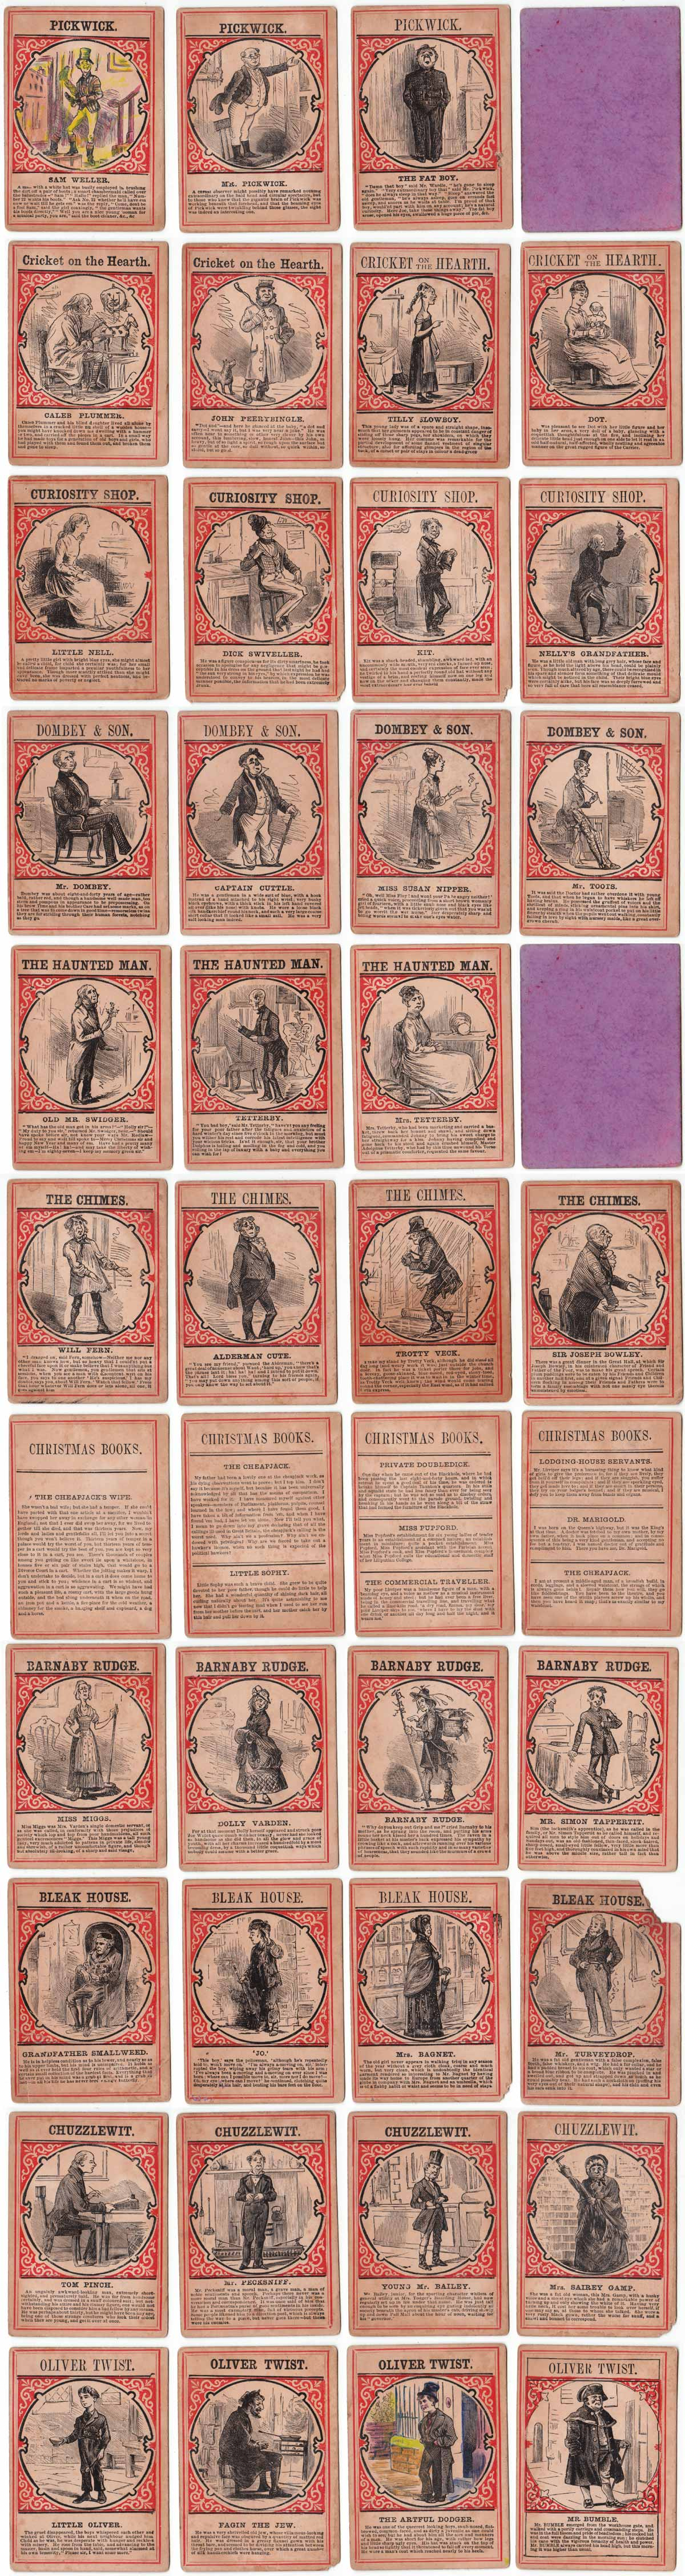 """Characters from Charles Dickens"" card game published by Jaques & Son, c.1880"